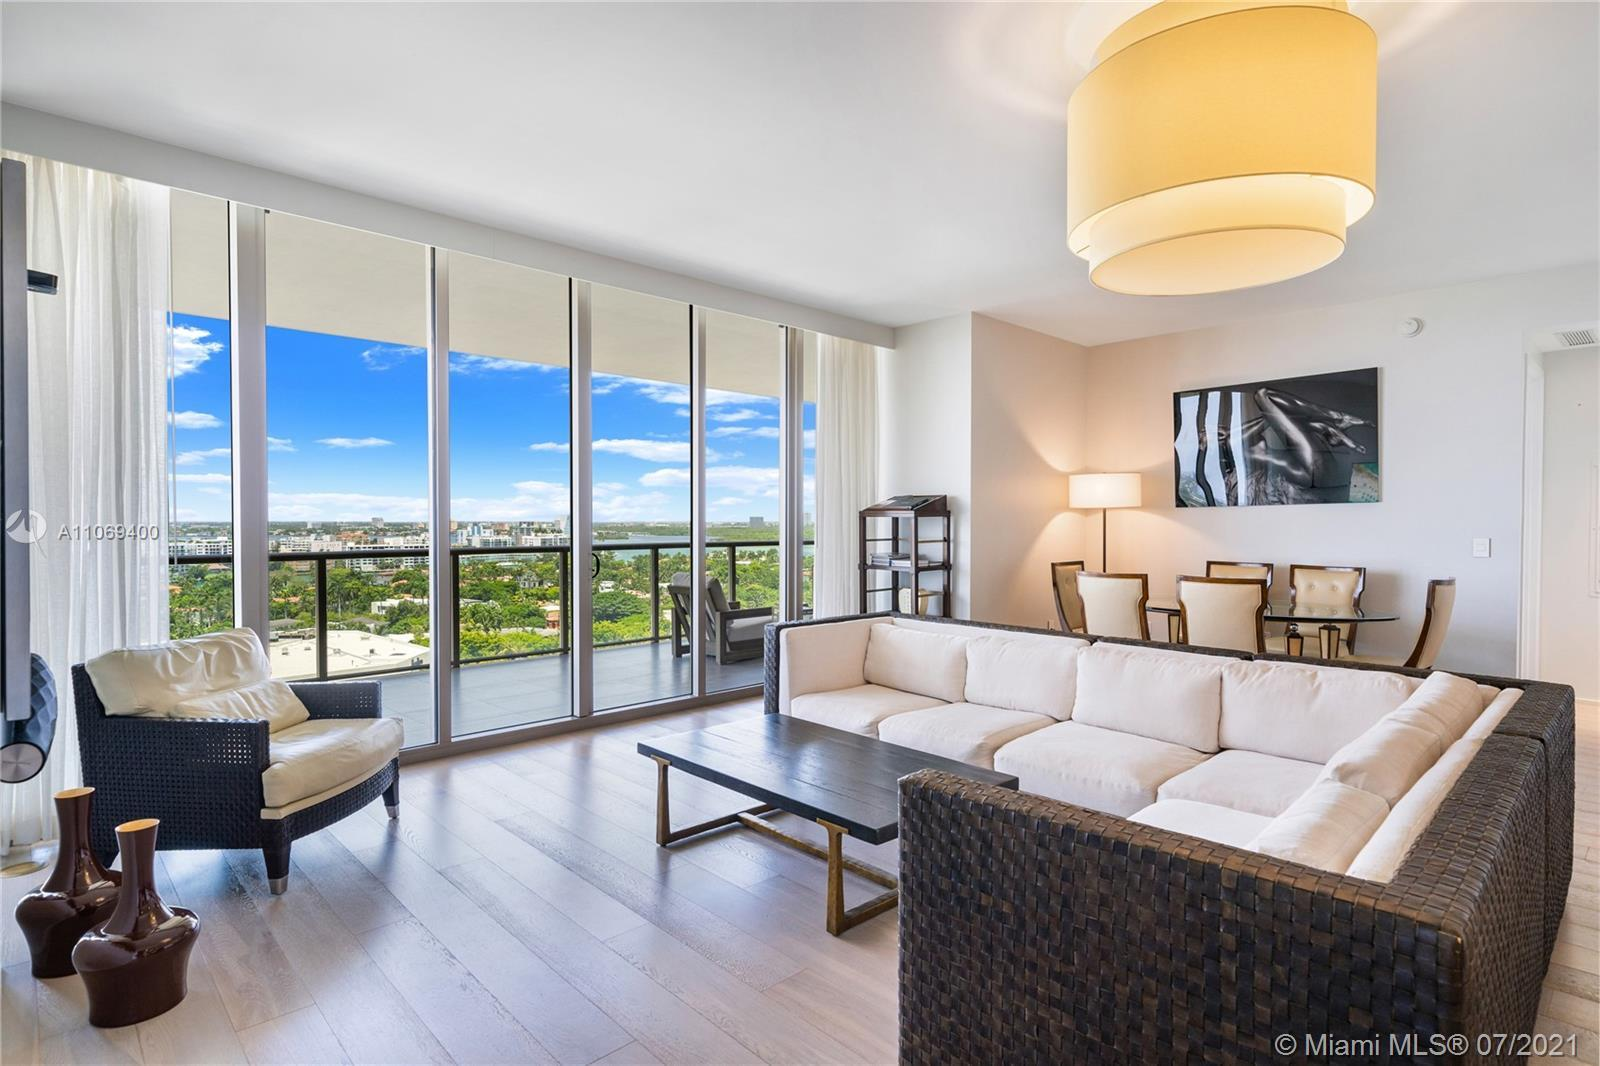 Beautifully finished 2 bedroom, 2 ½ bath residence at the 5 Star St. Regis Bal Harbour Resort.  Offe